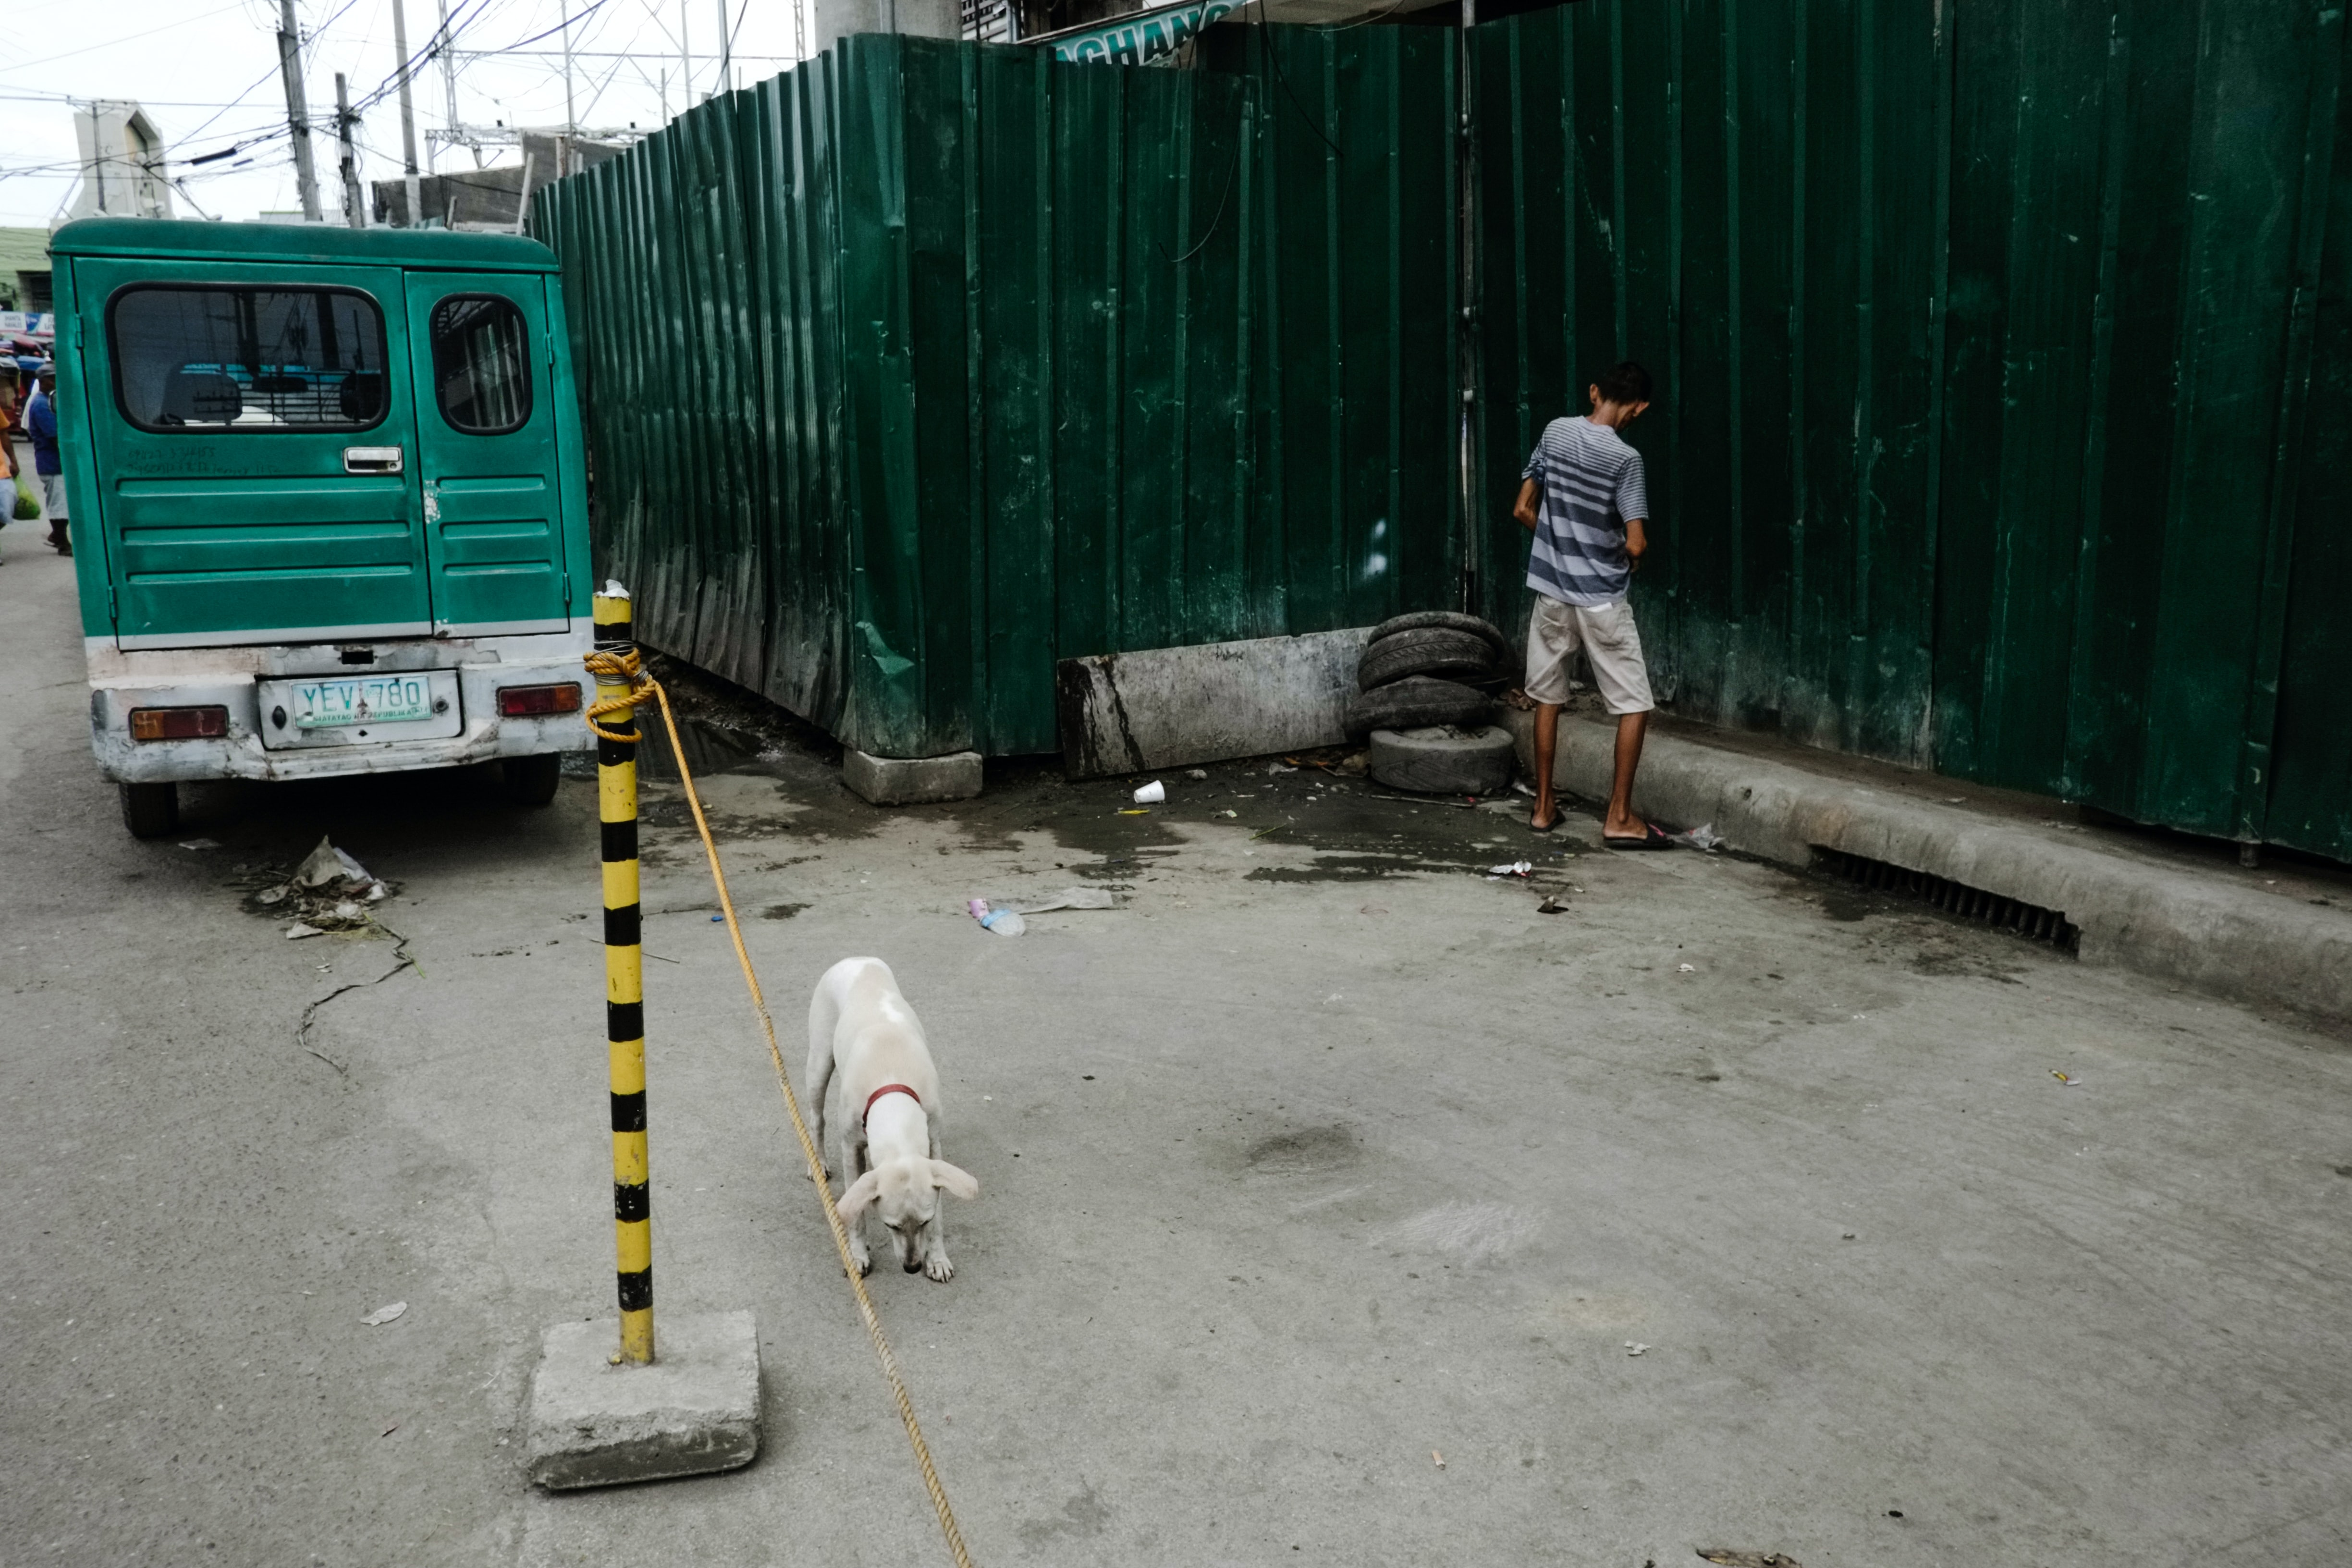 Urban scene in Tabunok of a green automobile, white dog, and young boy facing a wall